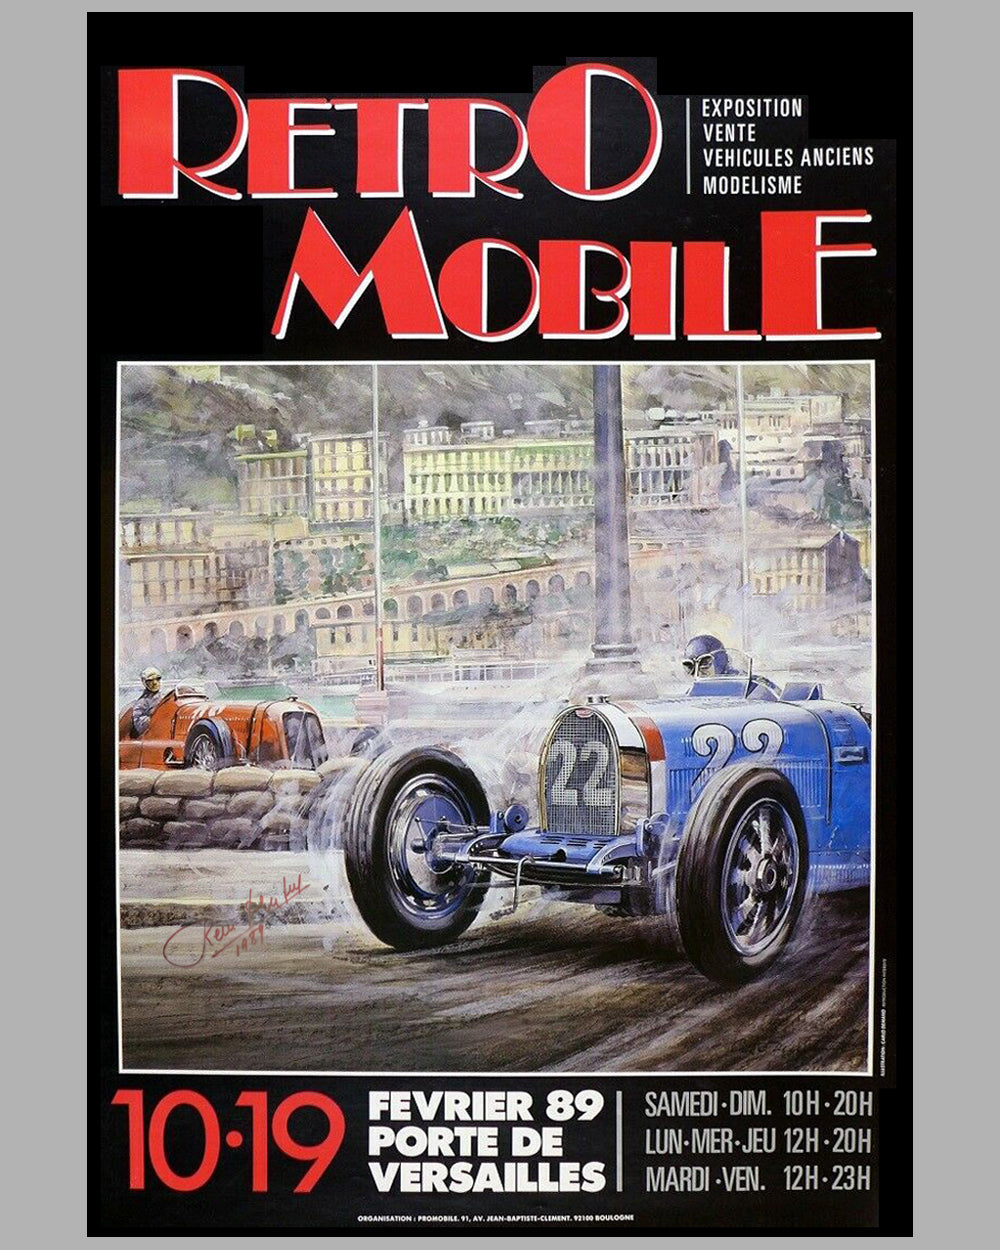 Retromobile event poster by Carlo Demand, autographed by Rene Dreyfus